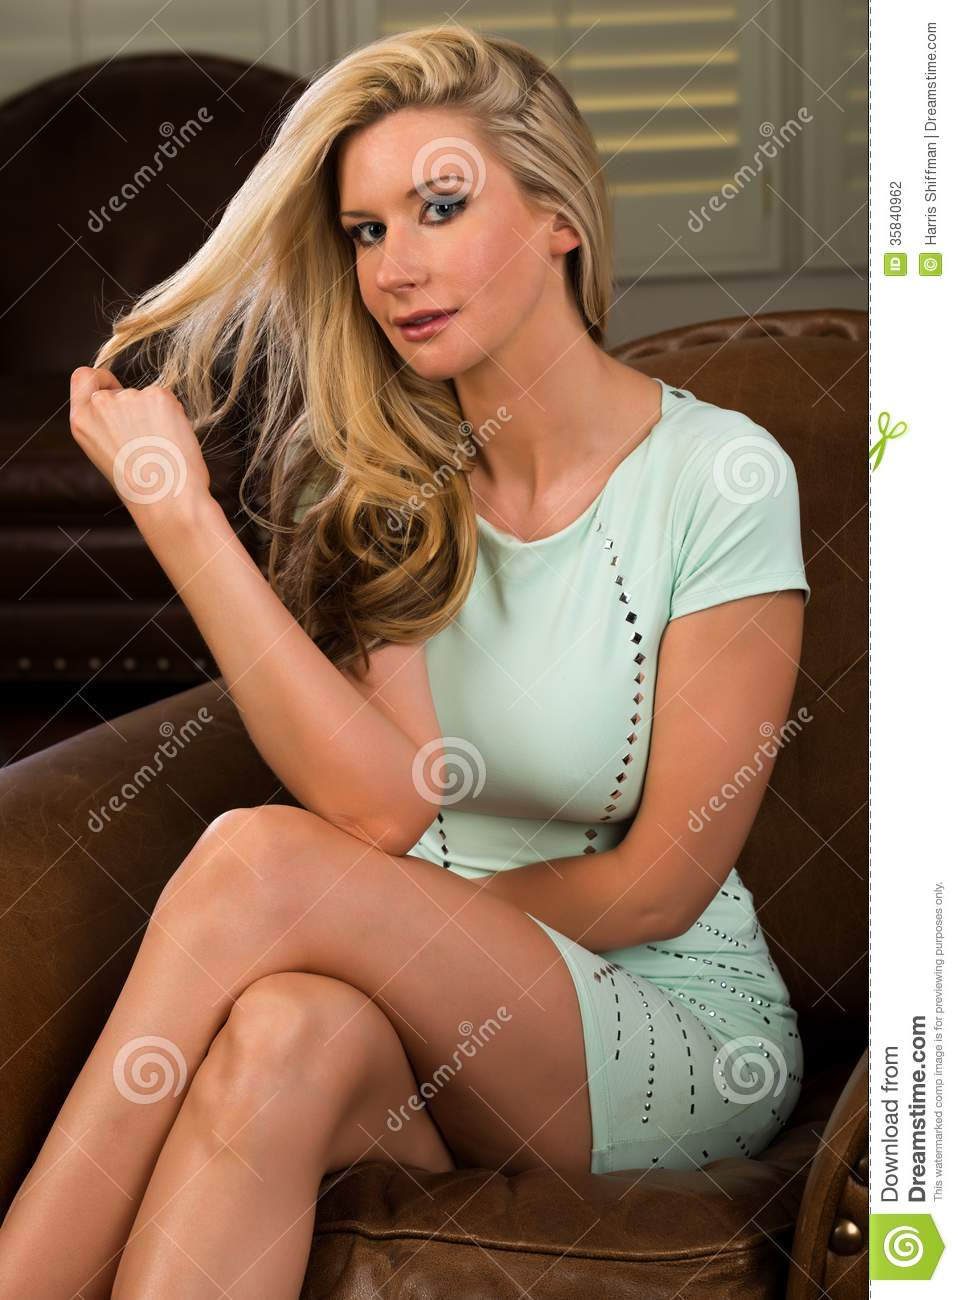 Blonde Stock Photography Image 35840962